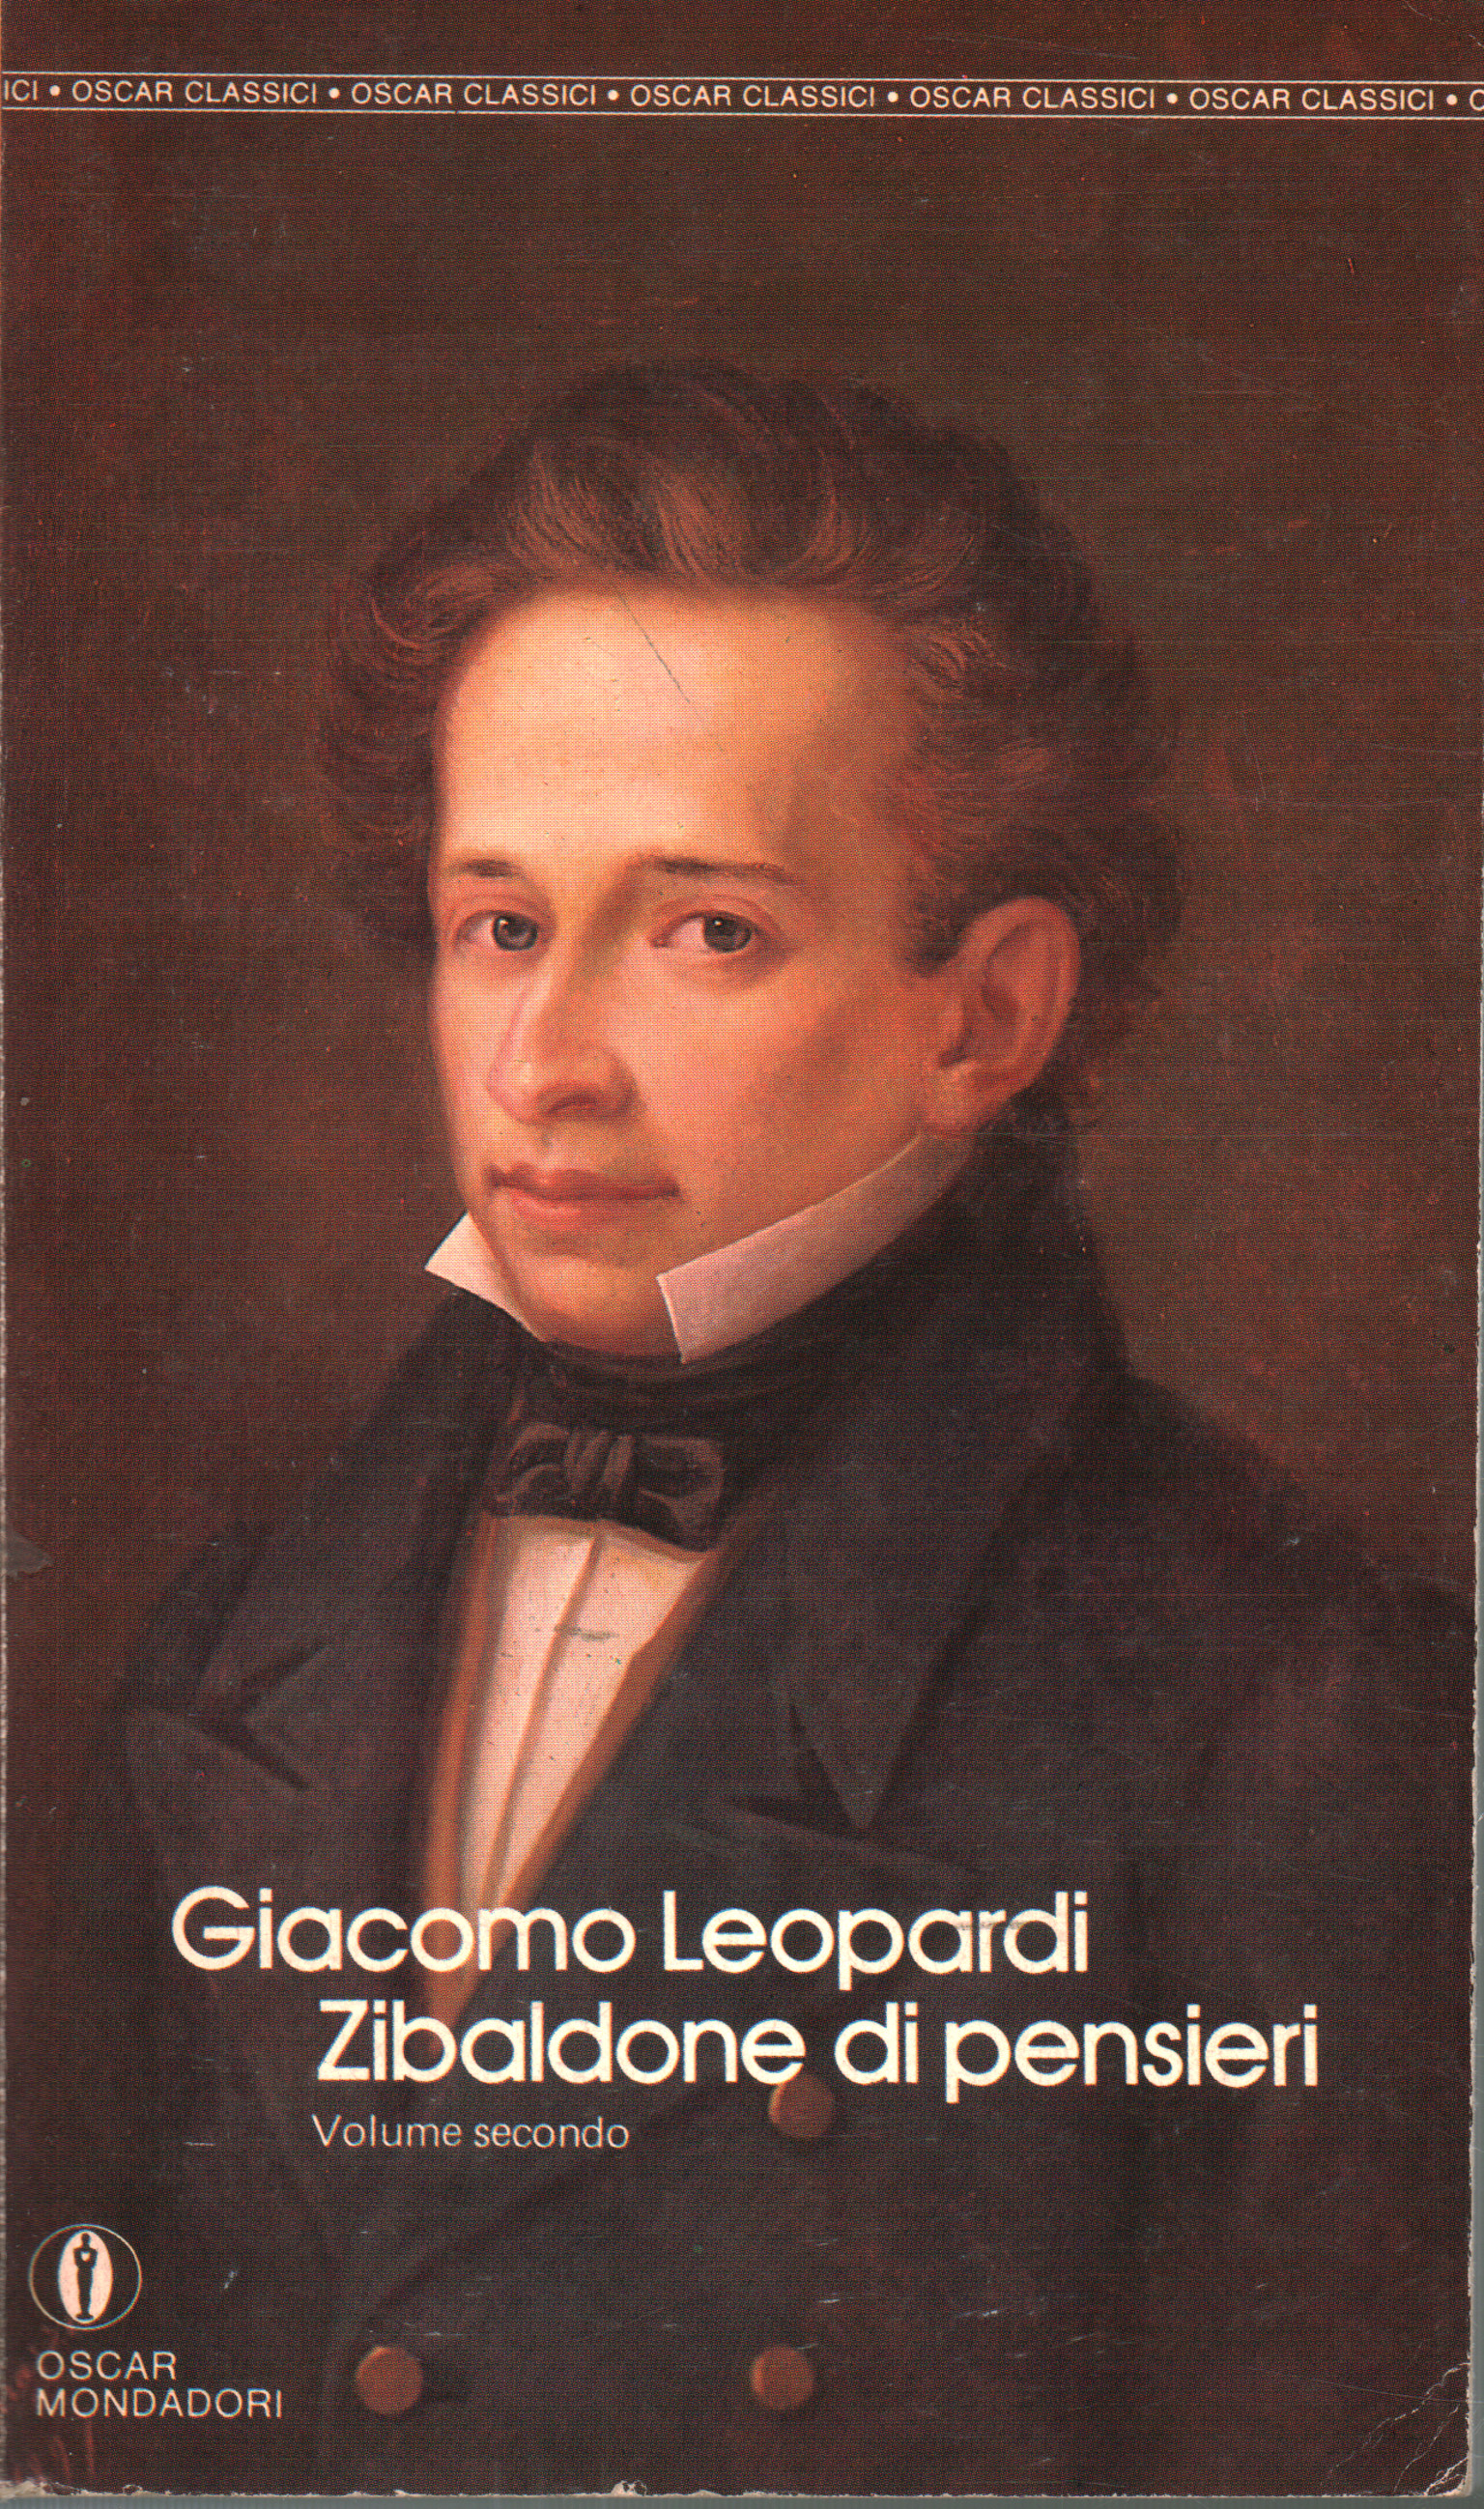 Zibaldone of thoughts (the second volume), Giacomo Leopardi